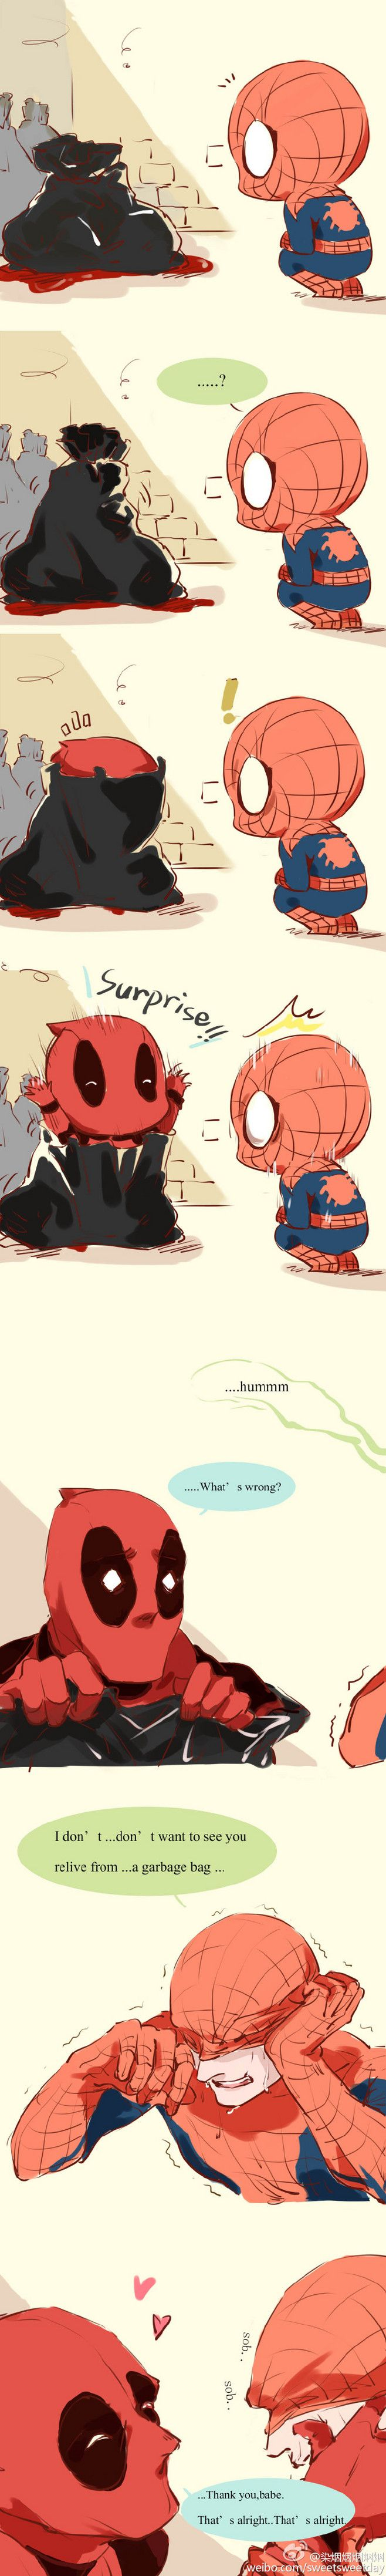 I was scared. Where were you? In the garbage spidey Deadpool! *cries*